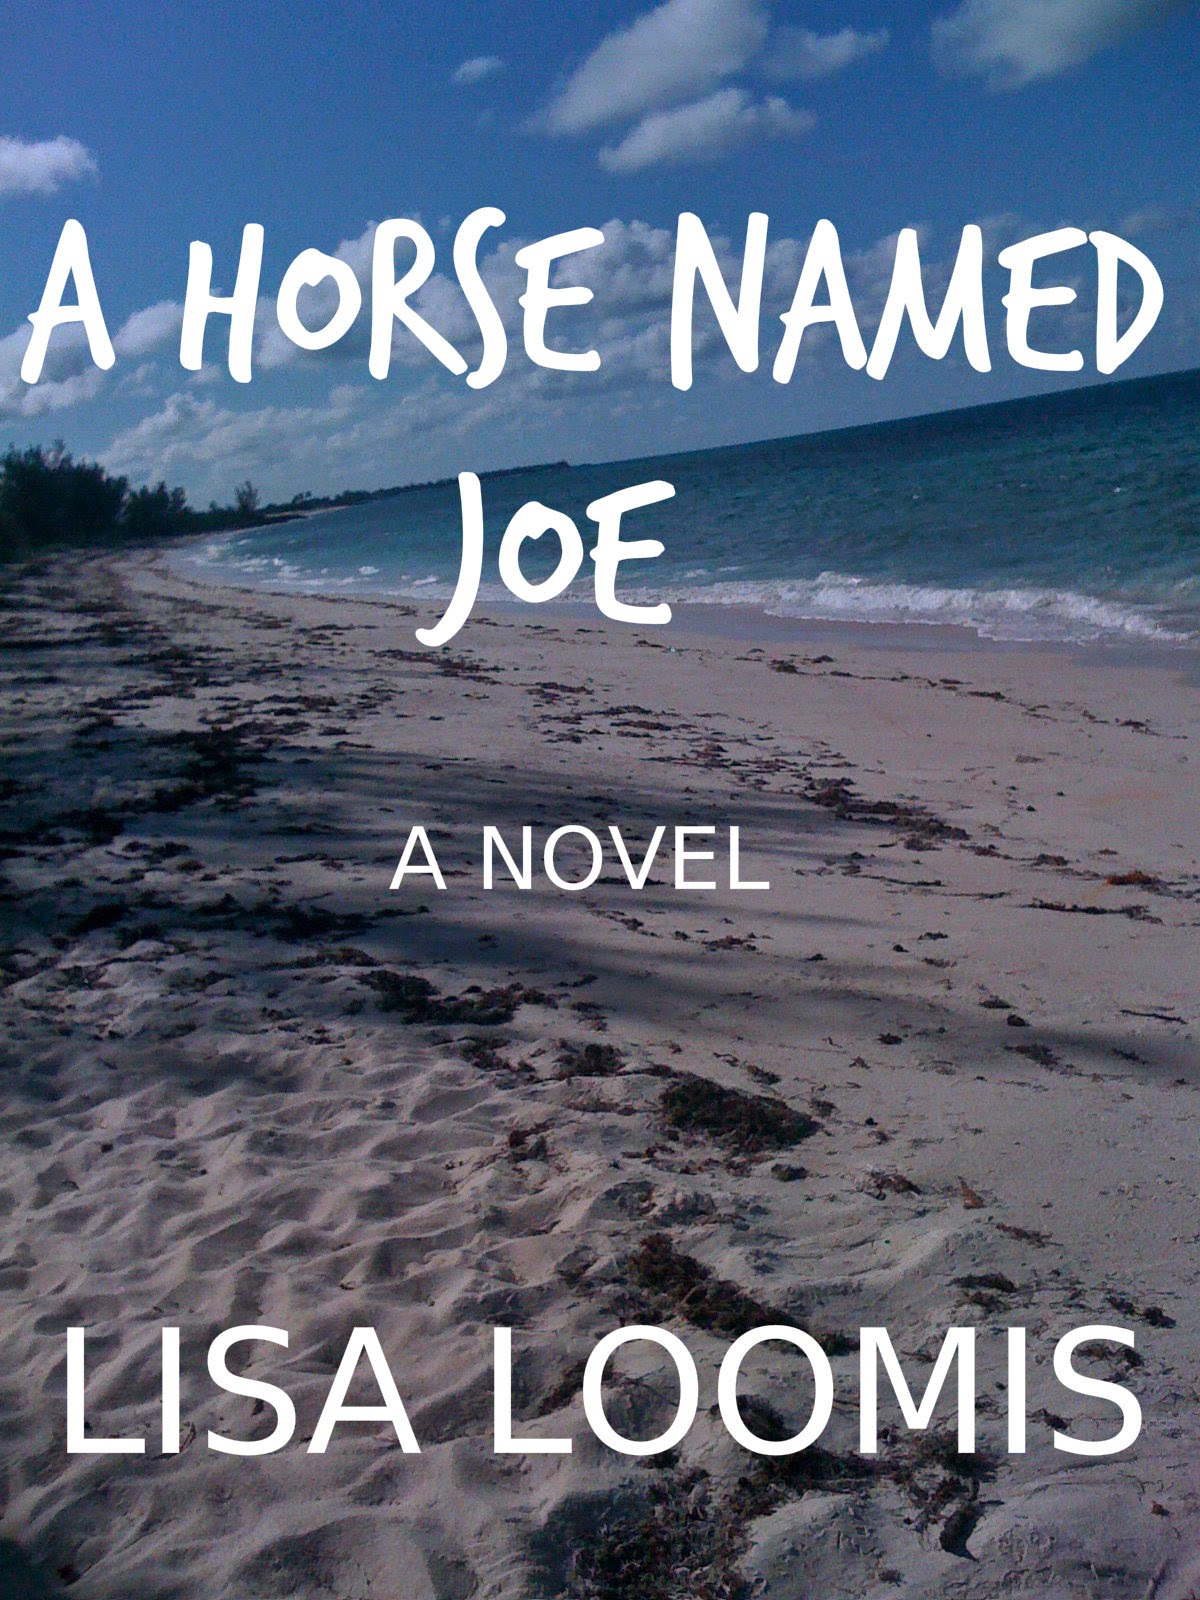 Books by Lisa Loomis